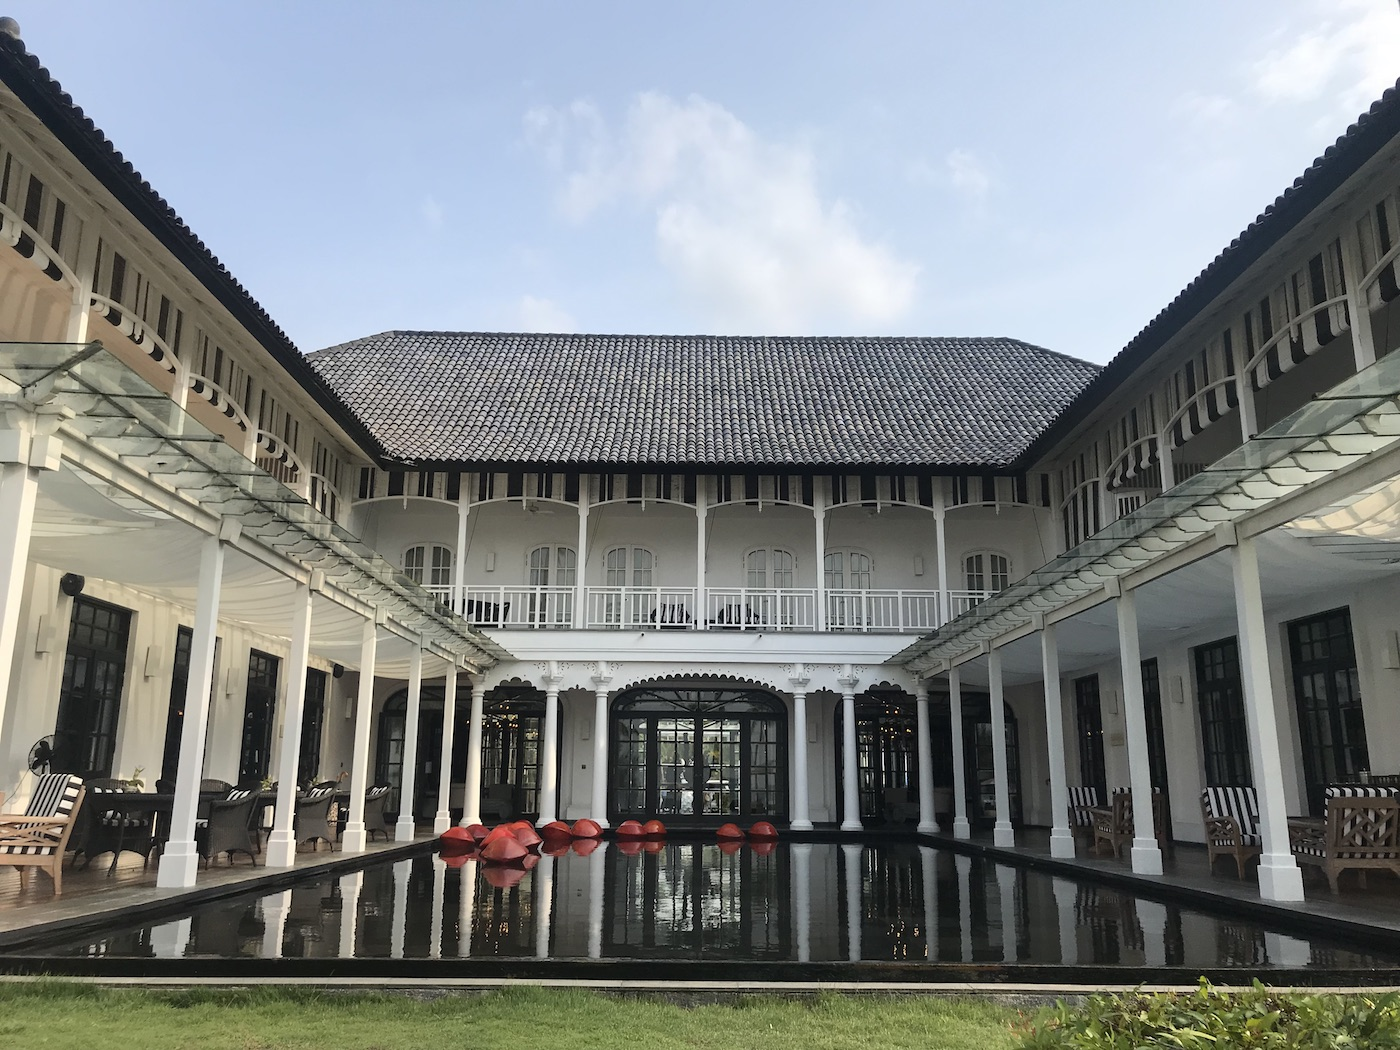 Best Bintan resorts: black and white colonial style at The Sanchaya